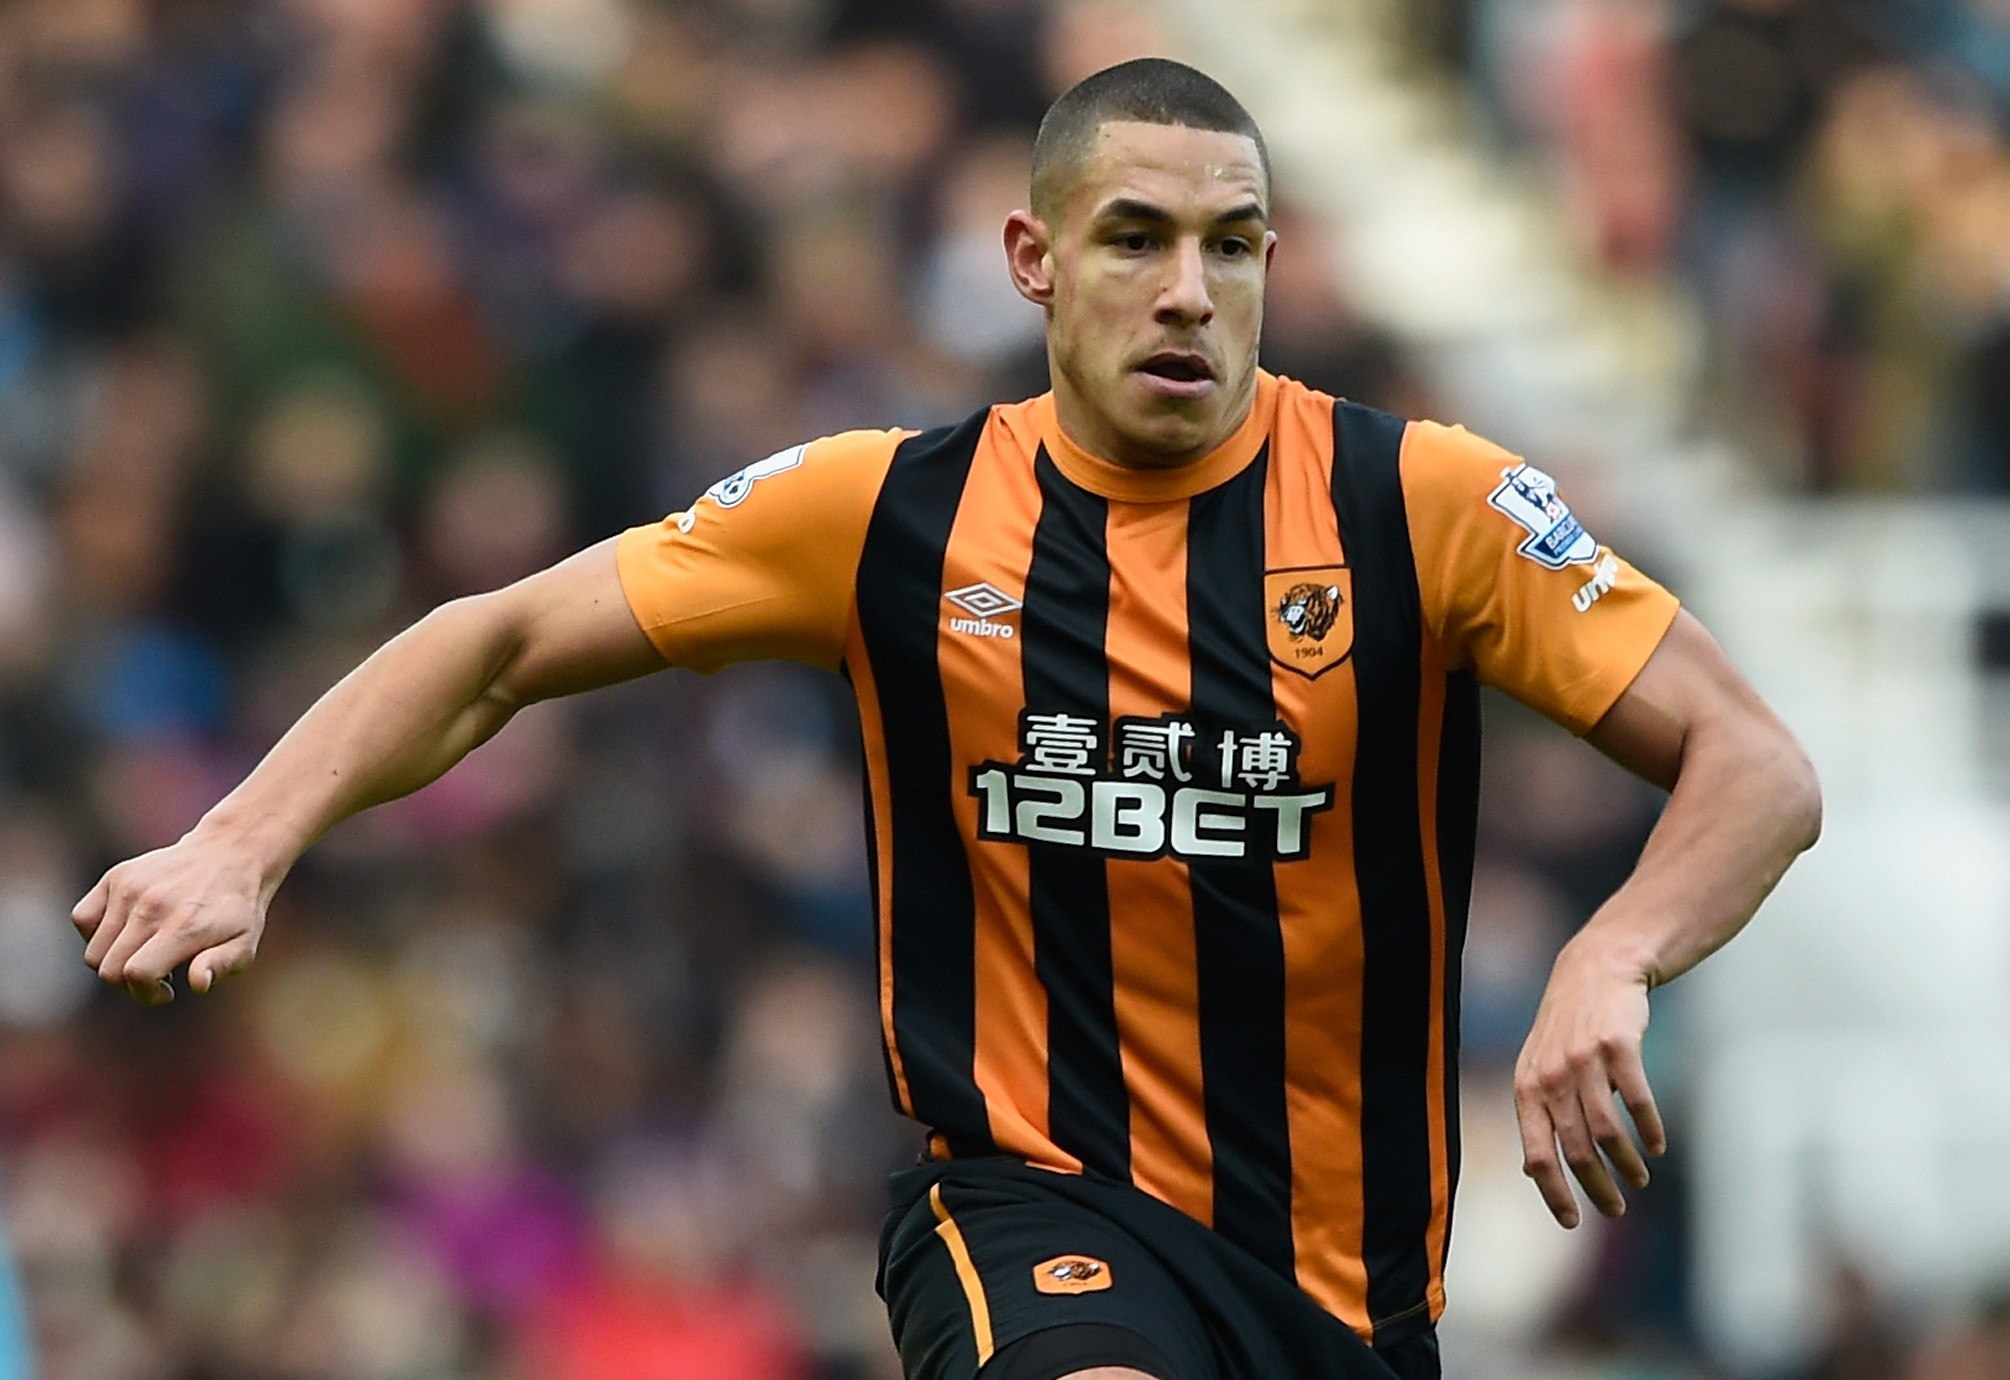 Jake Livermore cost £6million to sign last summer (Picture: Getty)